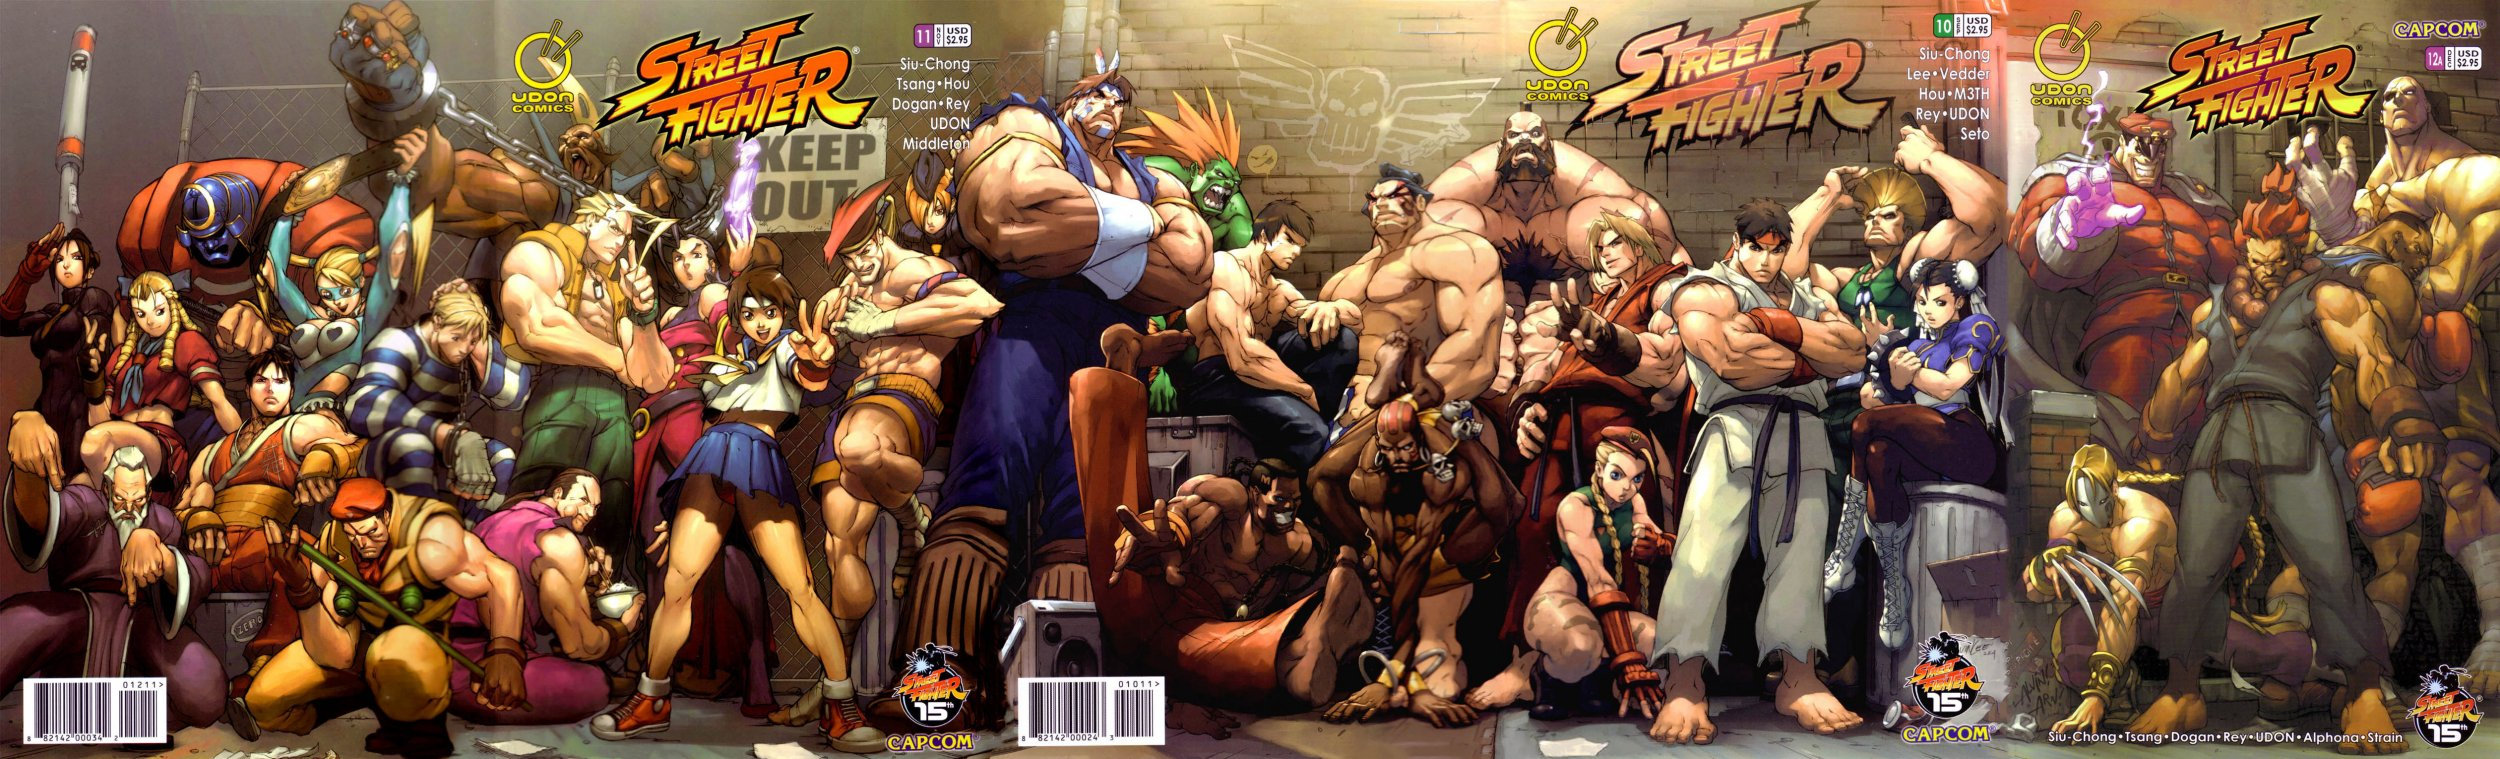 Street Fighter Vol.1 010-012 cover join